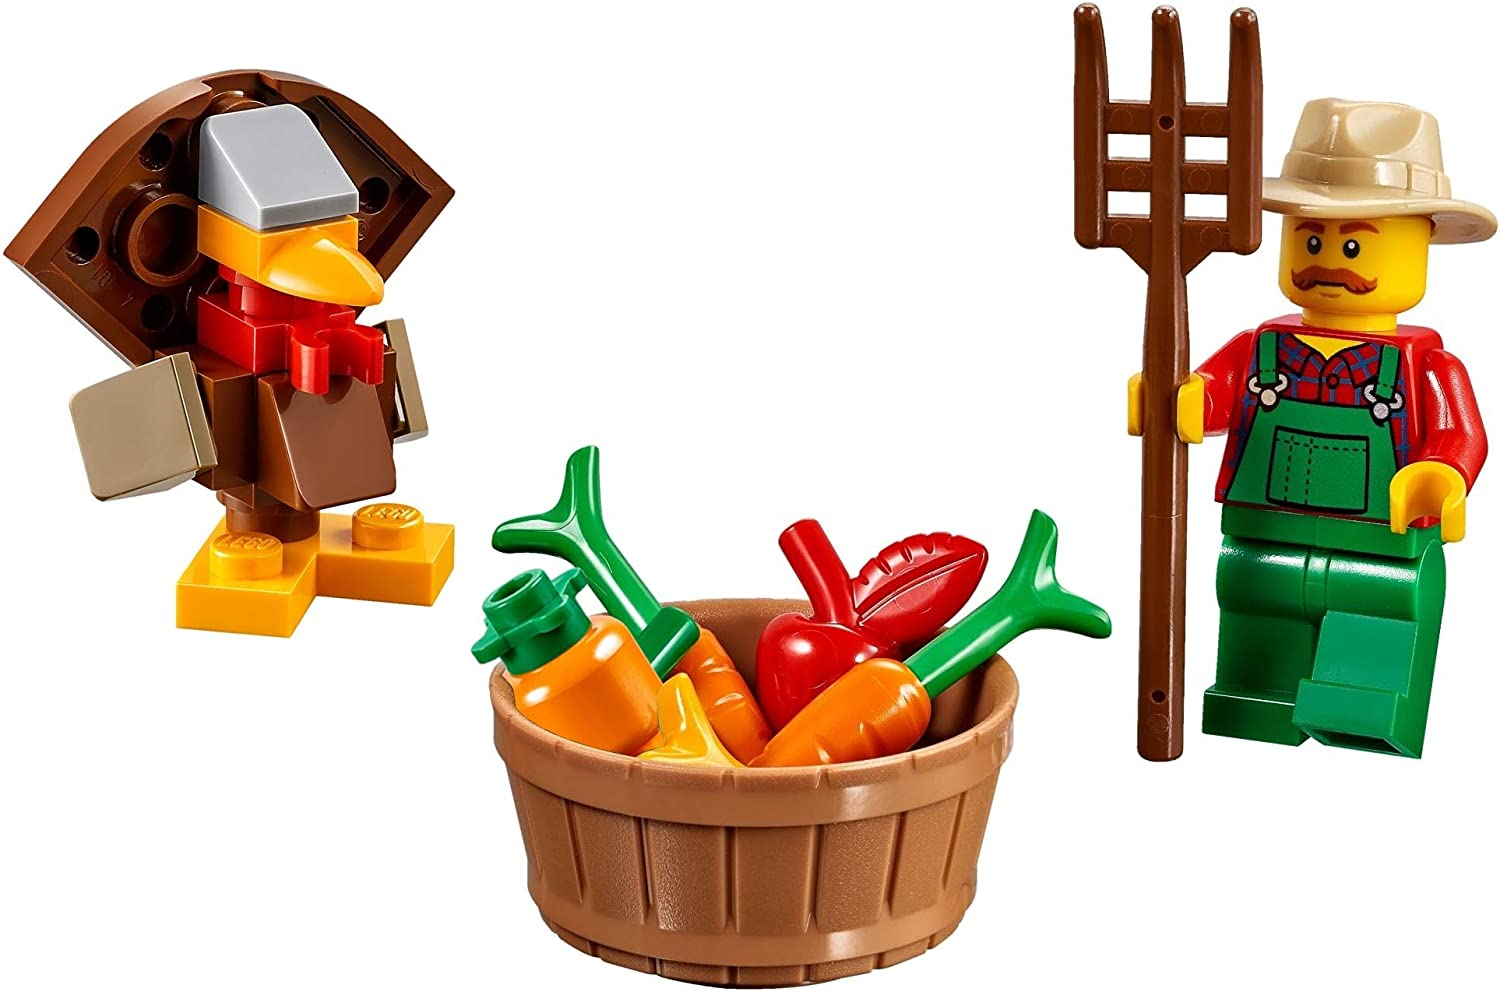 LEGO Exclusive Minifigure - Farmer in Overalls (with Pitchfork Basket of Vegetables & Turkey) 40261